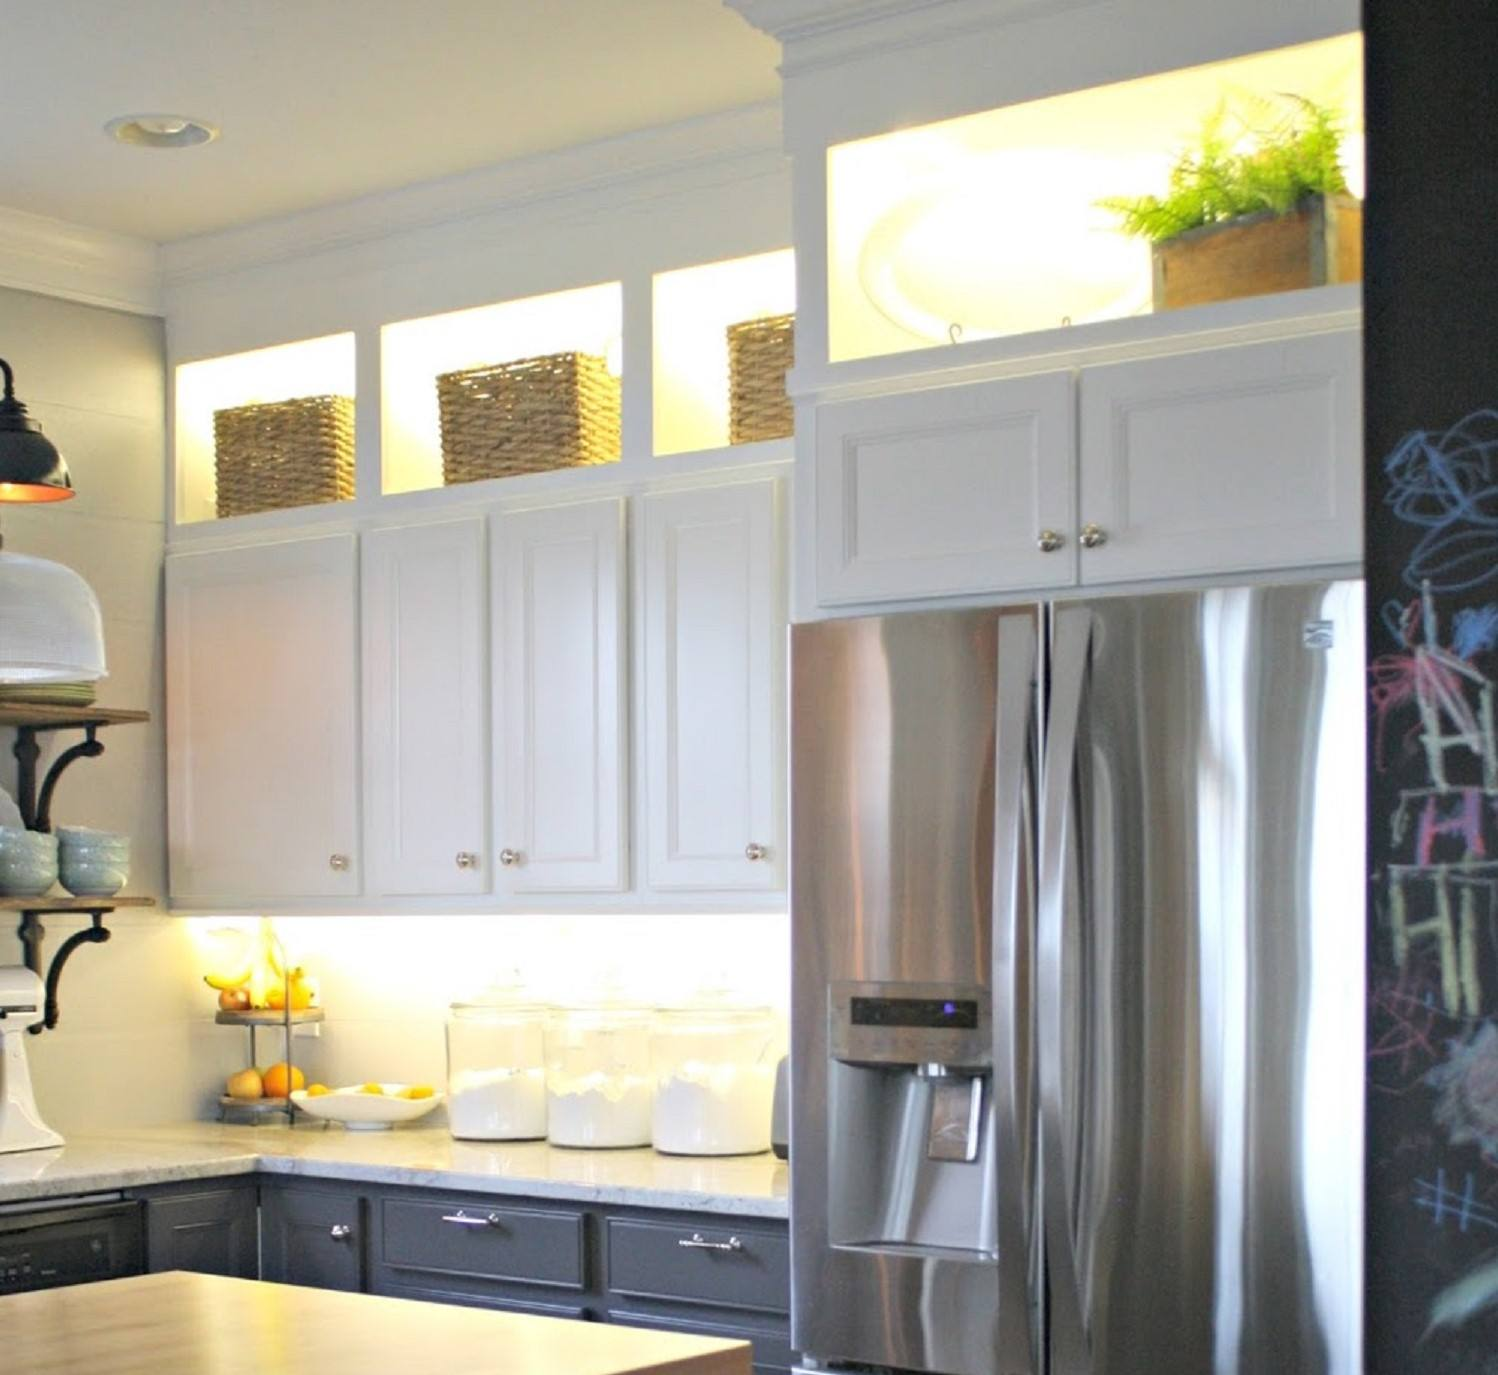 10 DIY Kitchen Cabinet Ideas